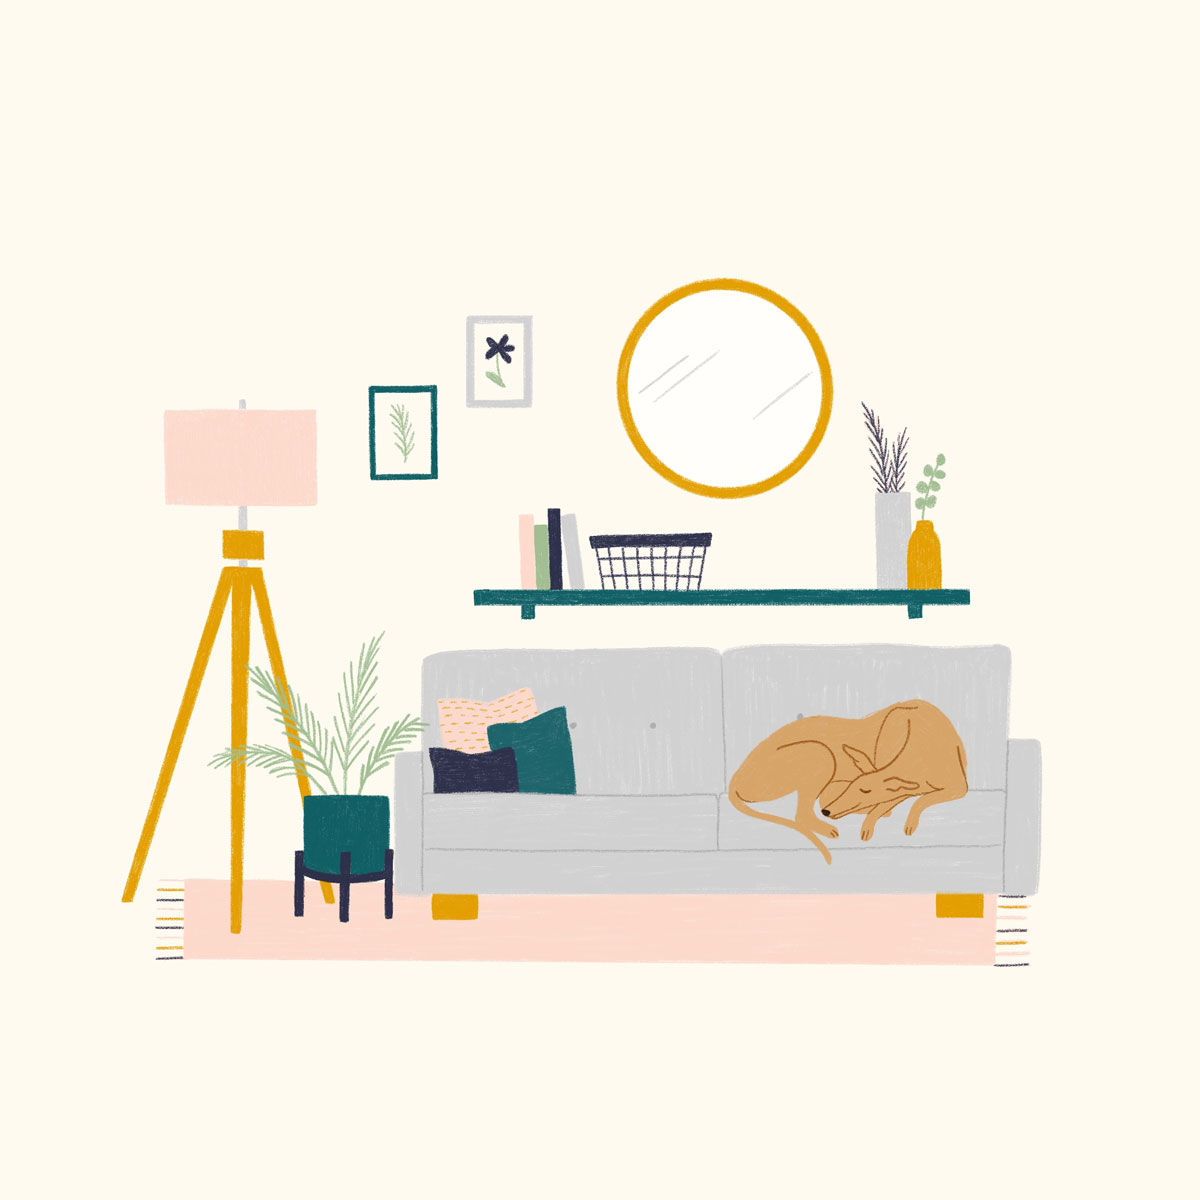 dog on couch illustration